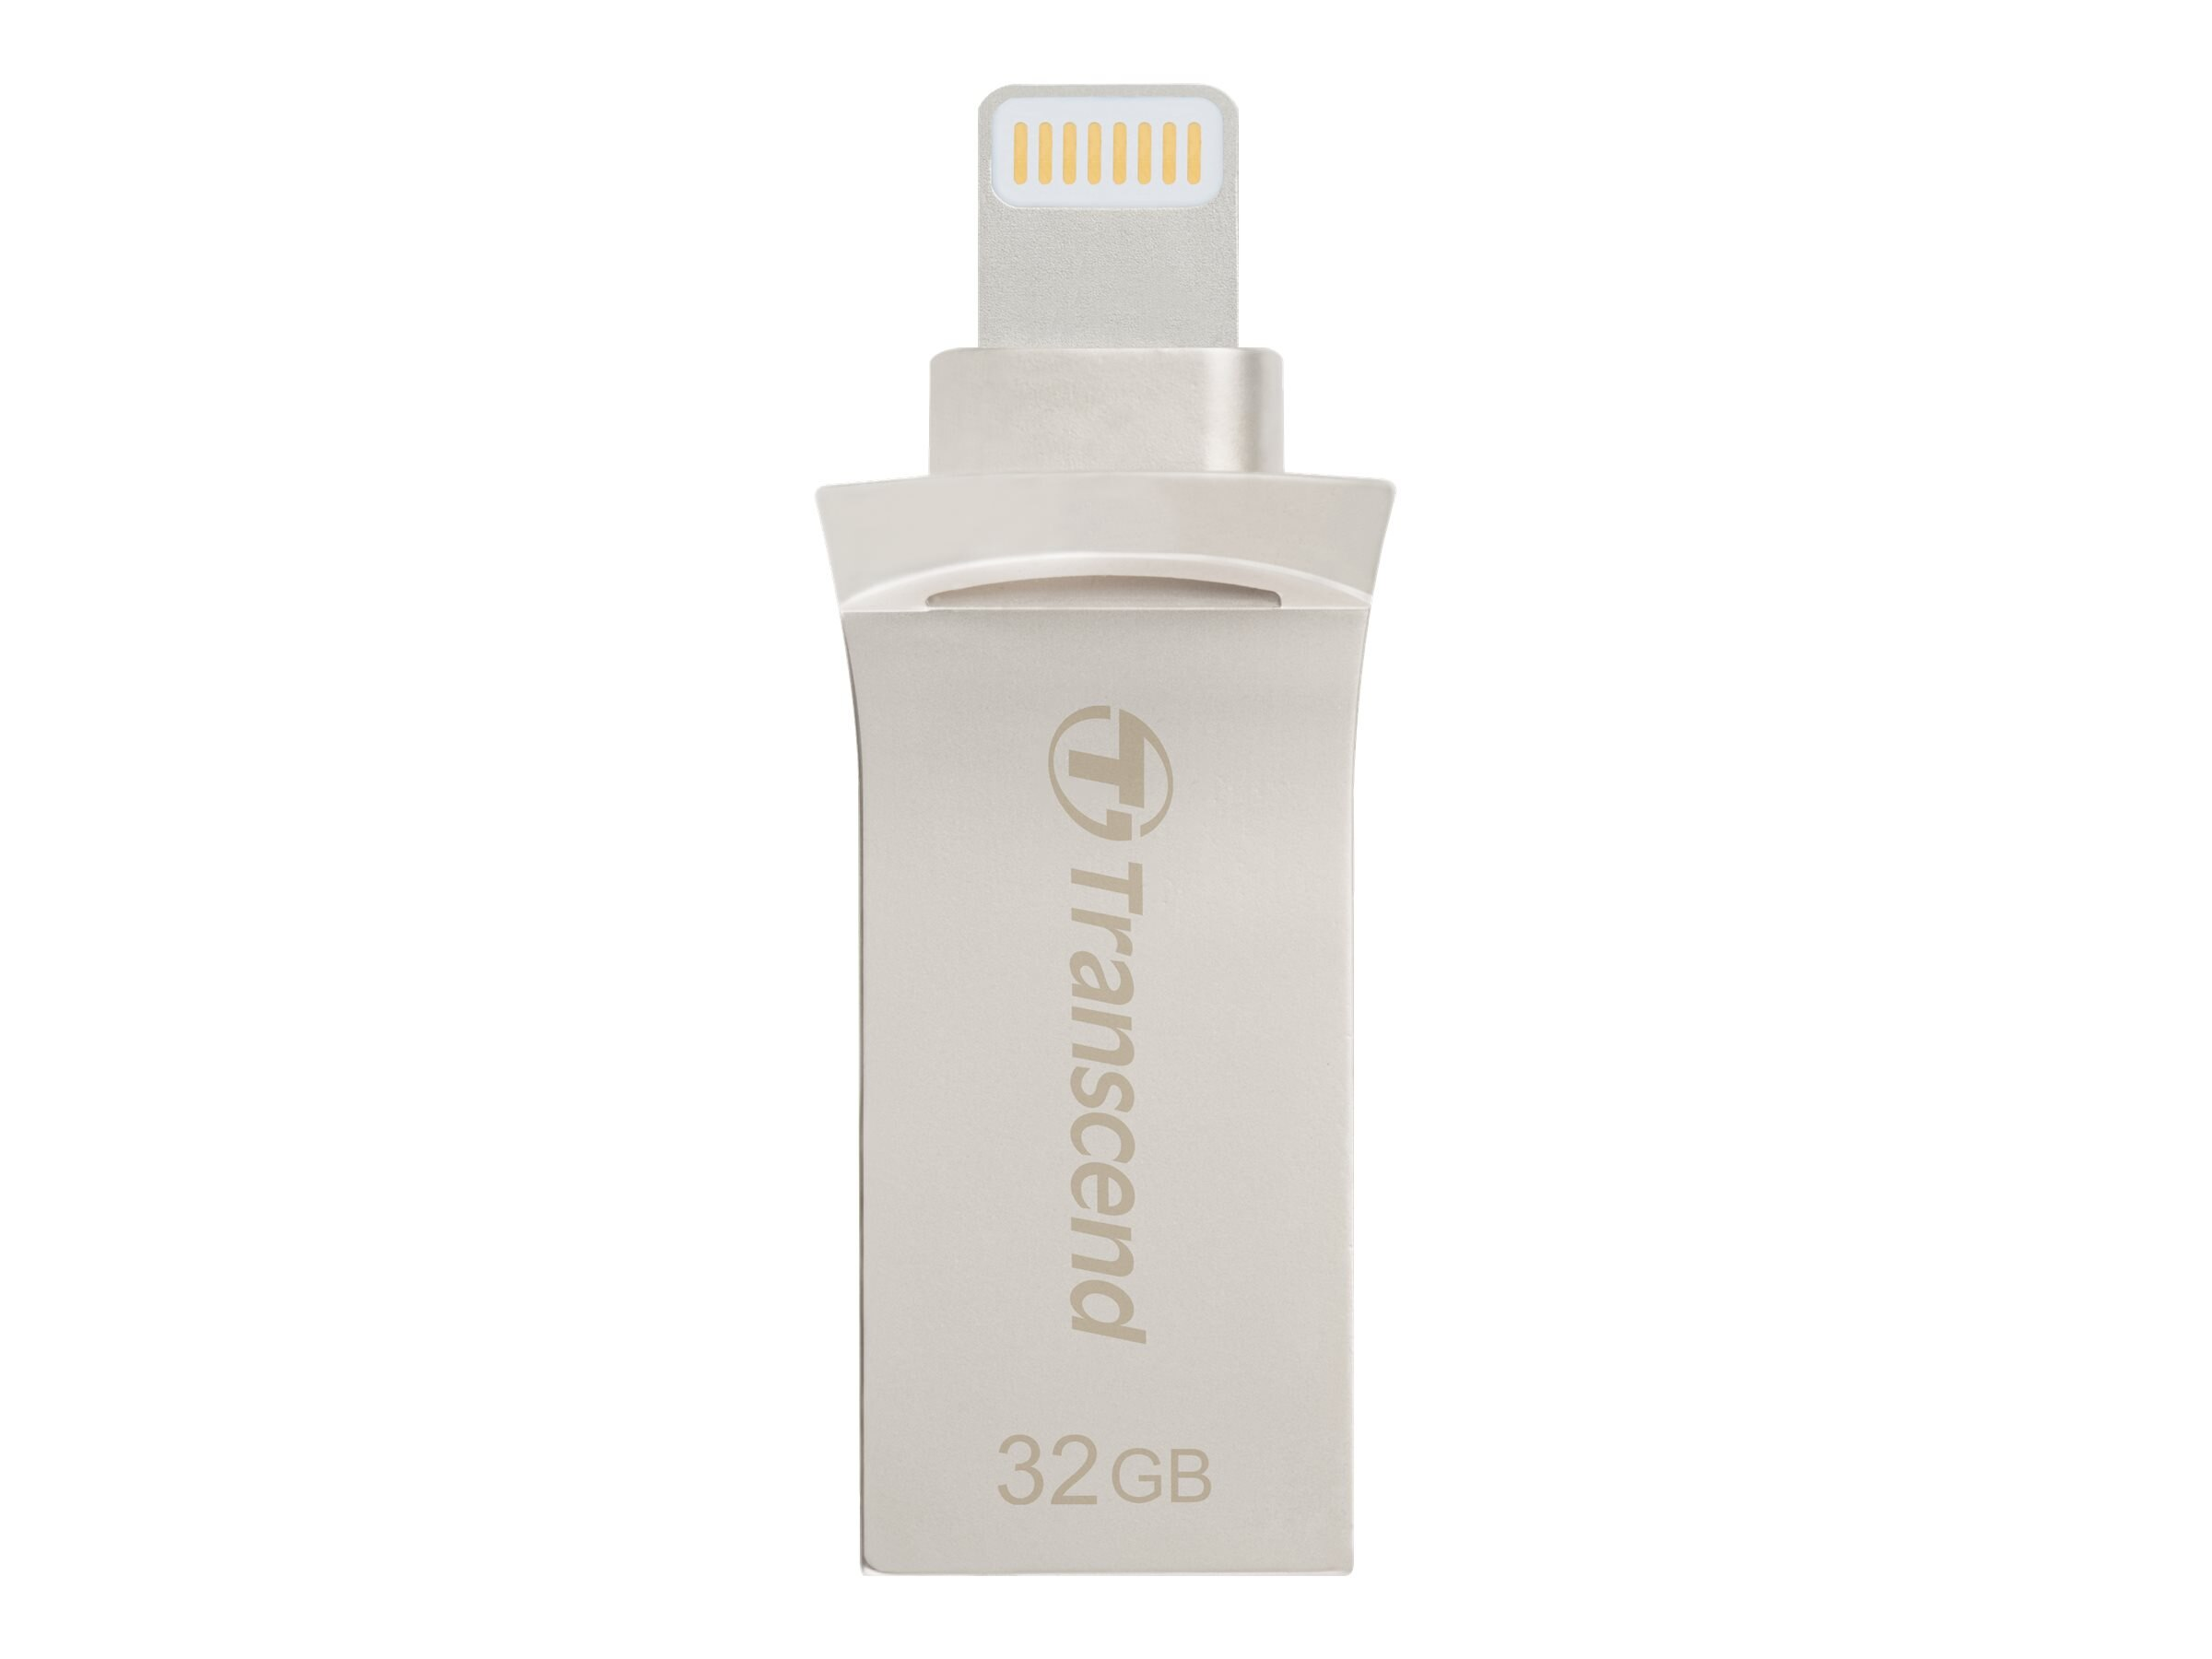 Transcend 64GB JetDrive Go 500 Lightning USB 3.1 Flash Drive, Silver, TS64GJDG500S